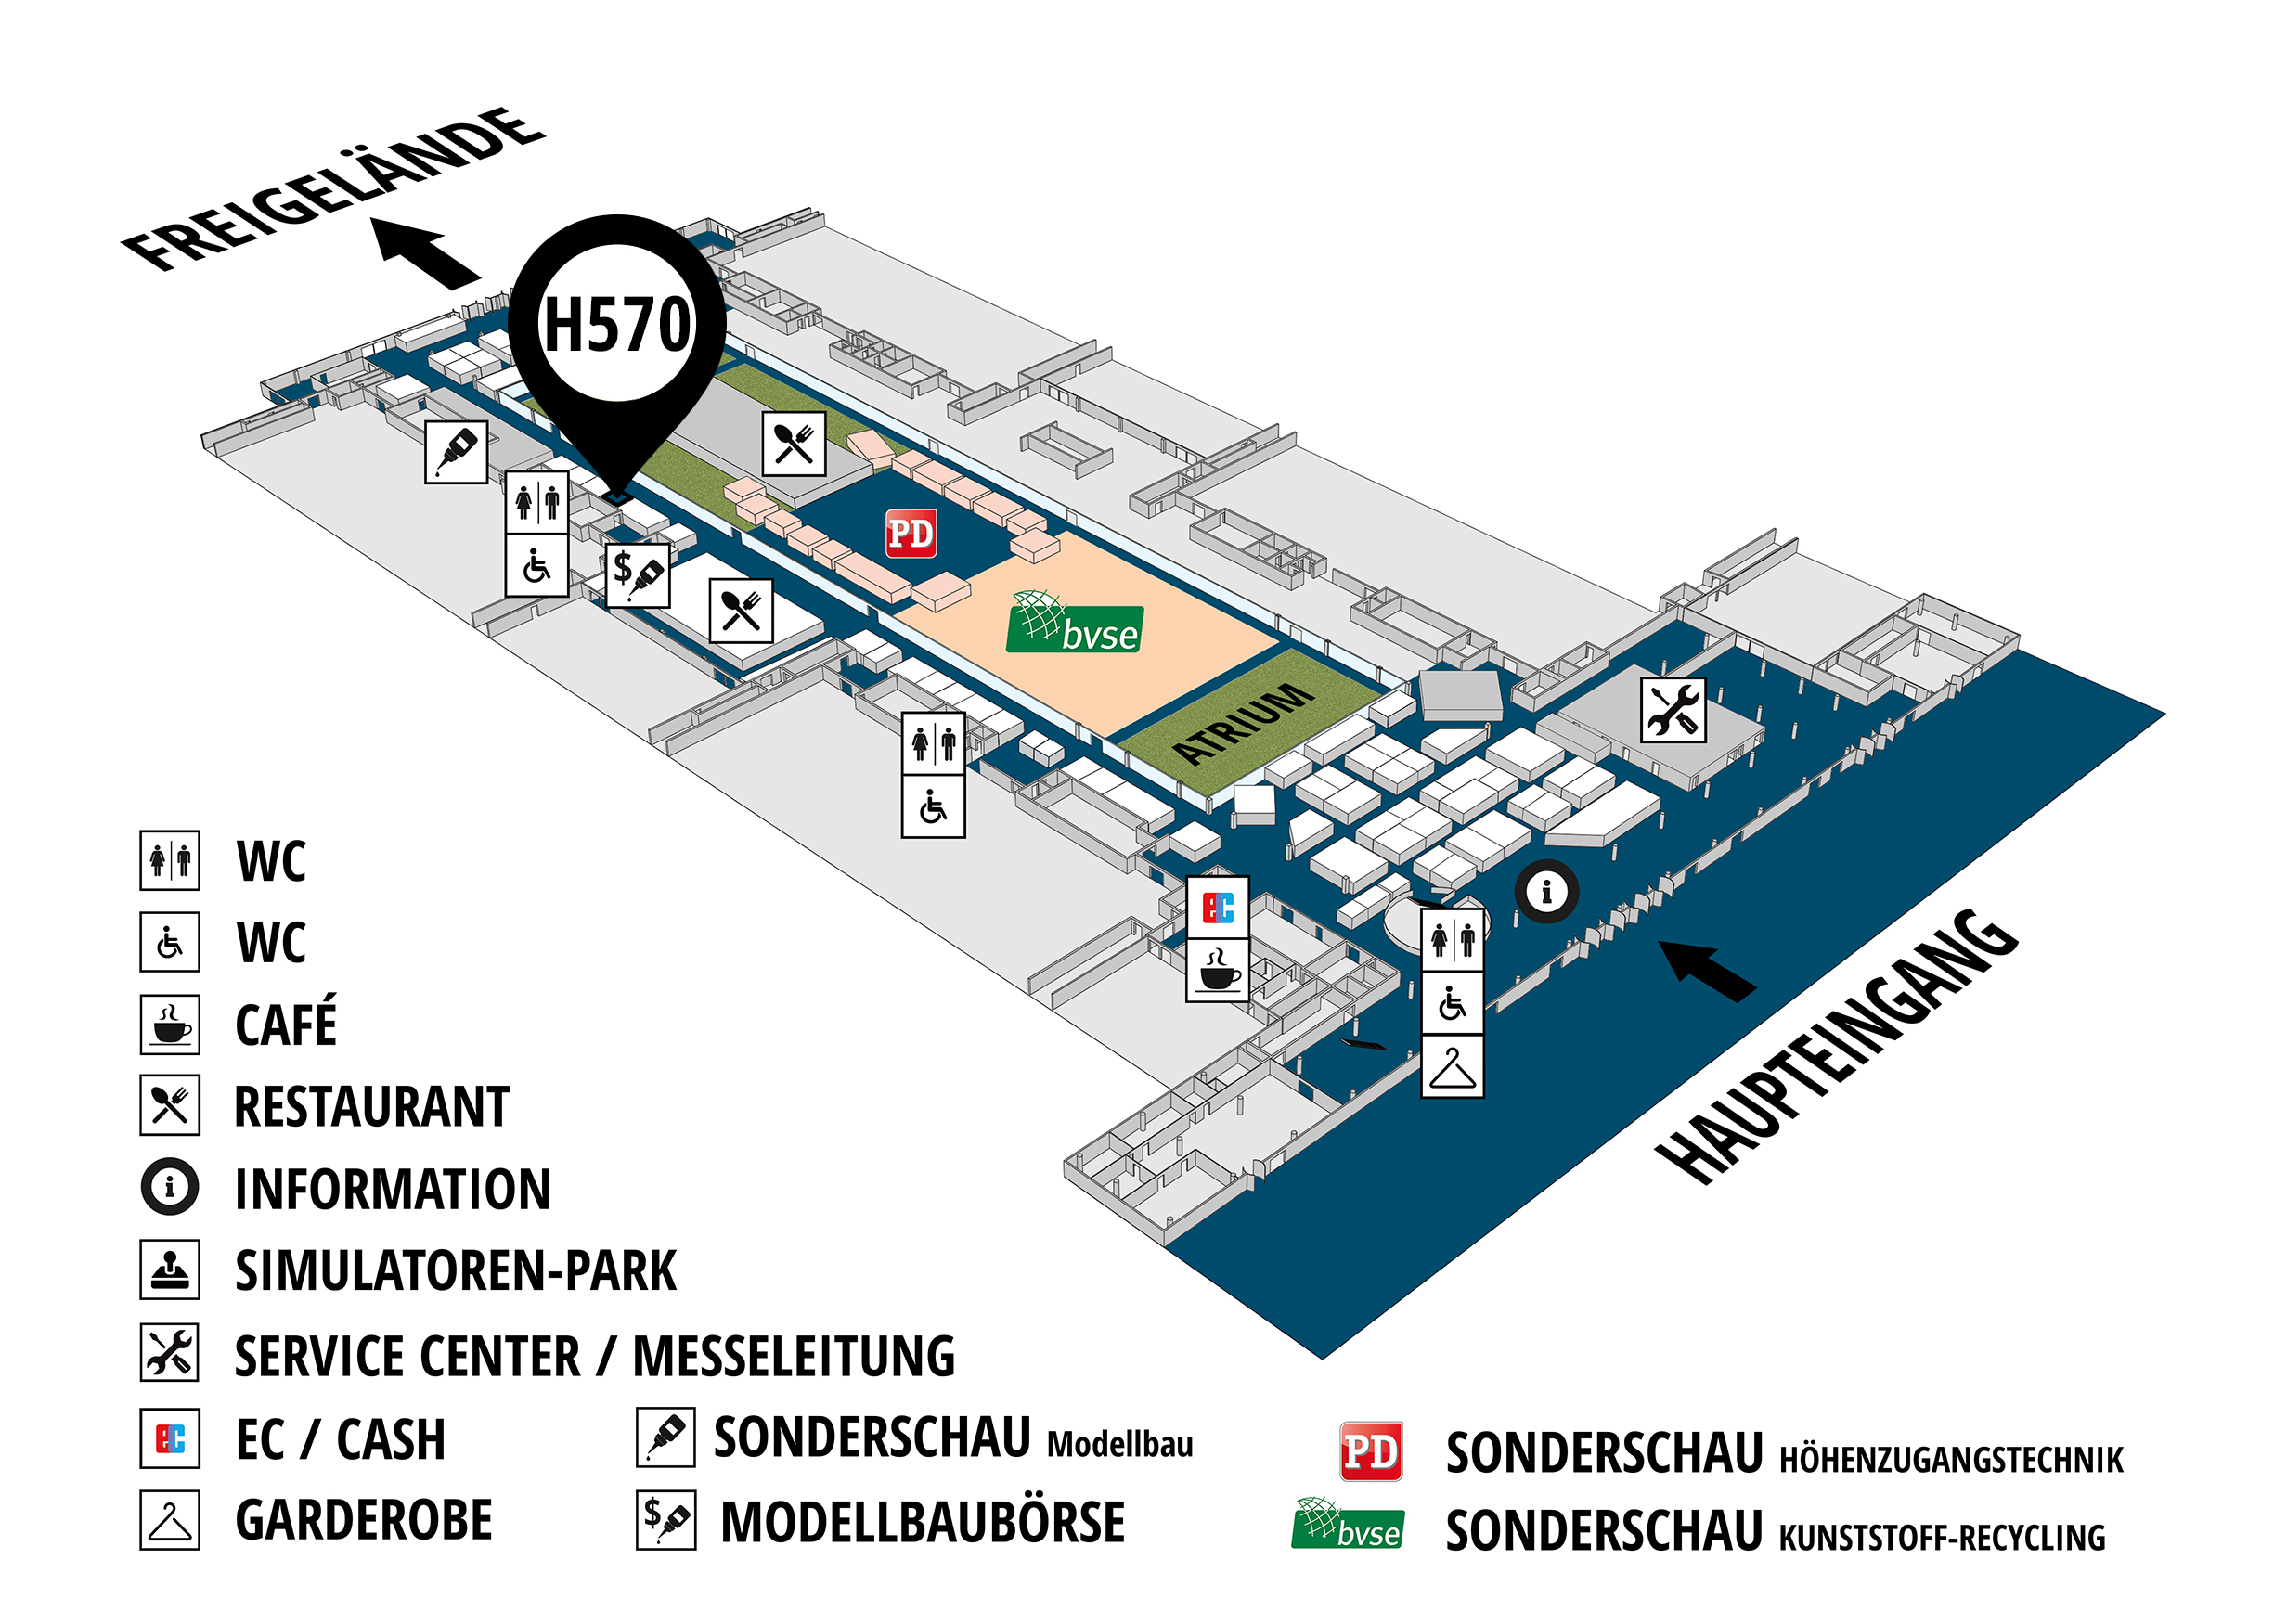 RecyclingAKTIV & TiefbauLIVE 2019. The Demonstration Trade Fairs ||Demonstration trade fair for waste removal and recycling. Demonstration trade fair for road construction and civil engineering. hall map (Visitors circuit): stand H570